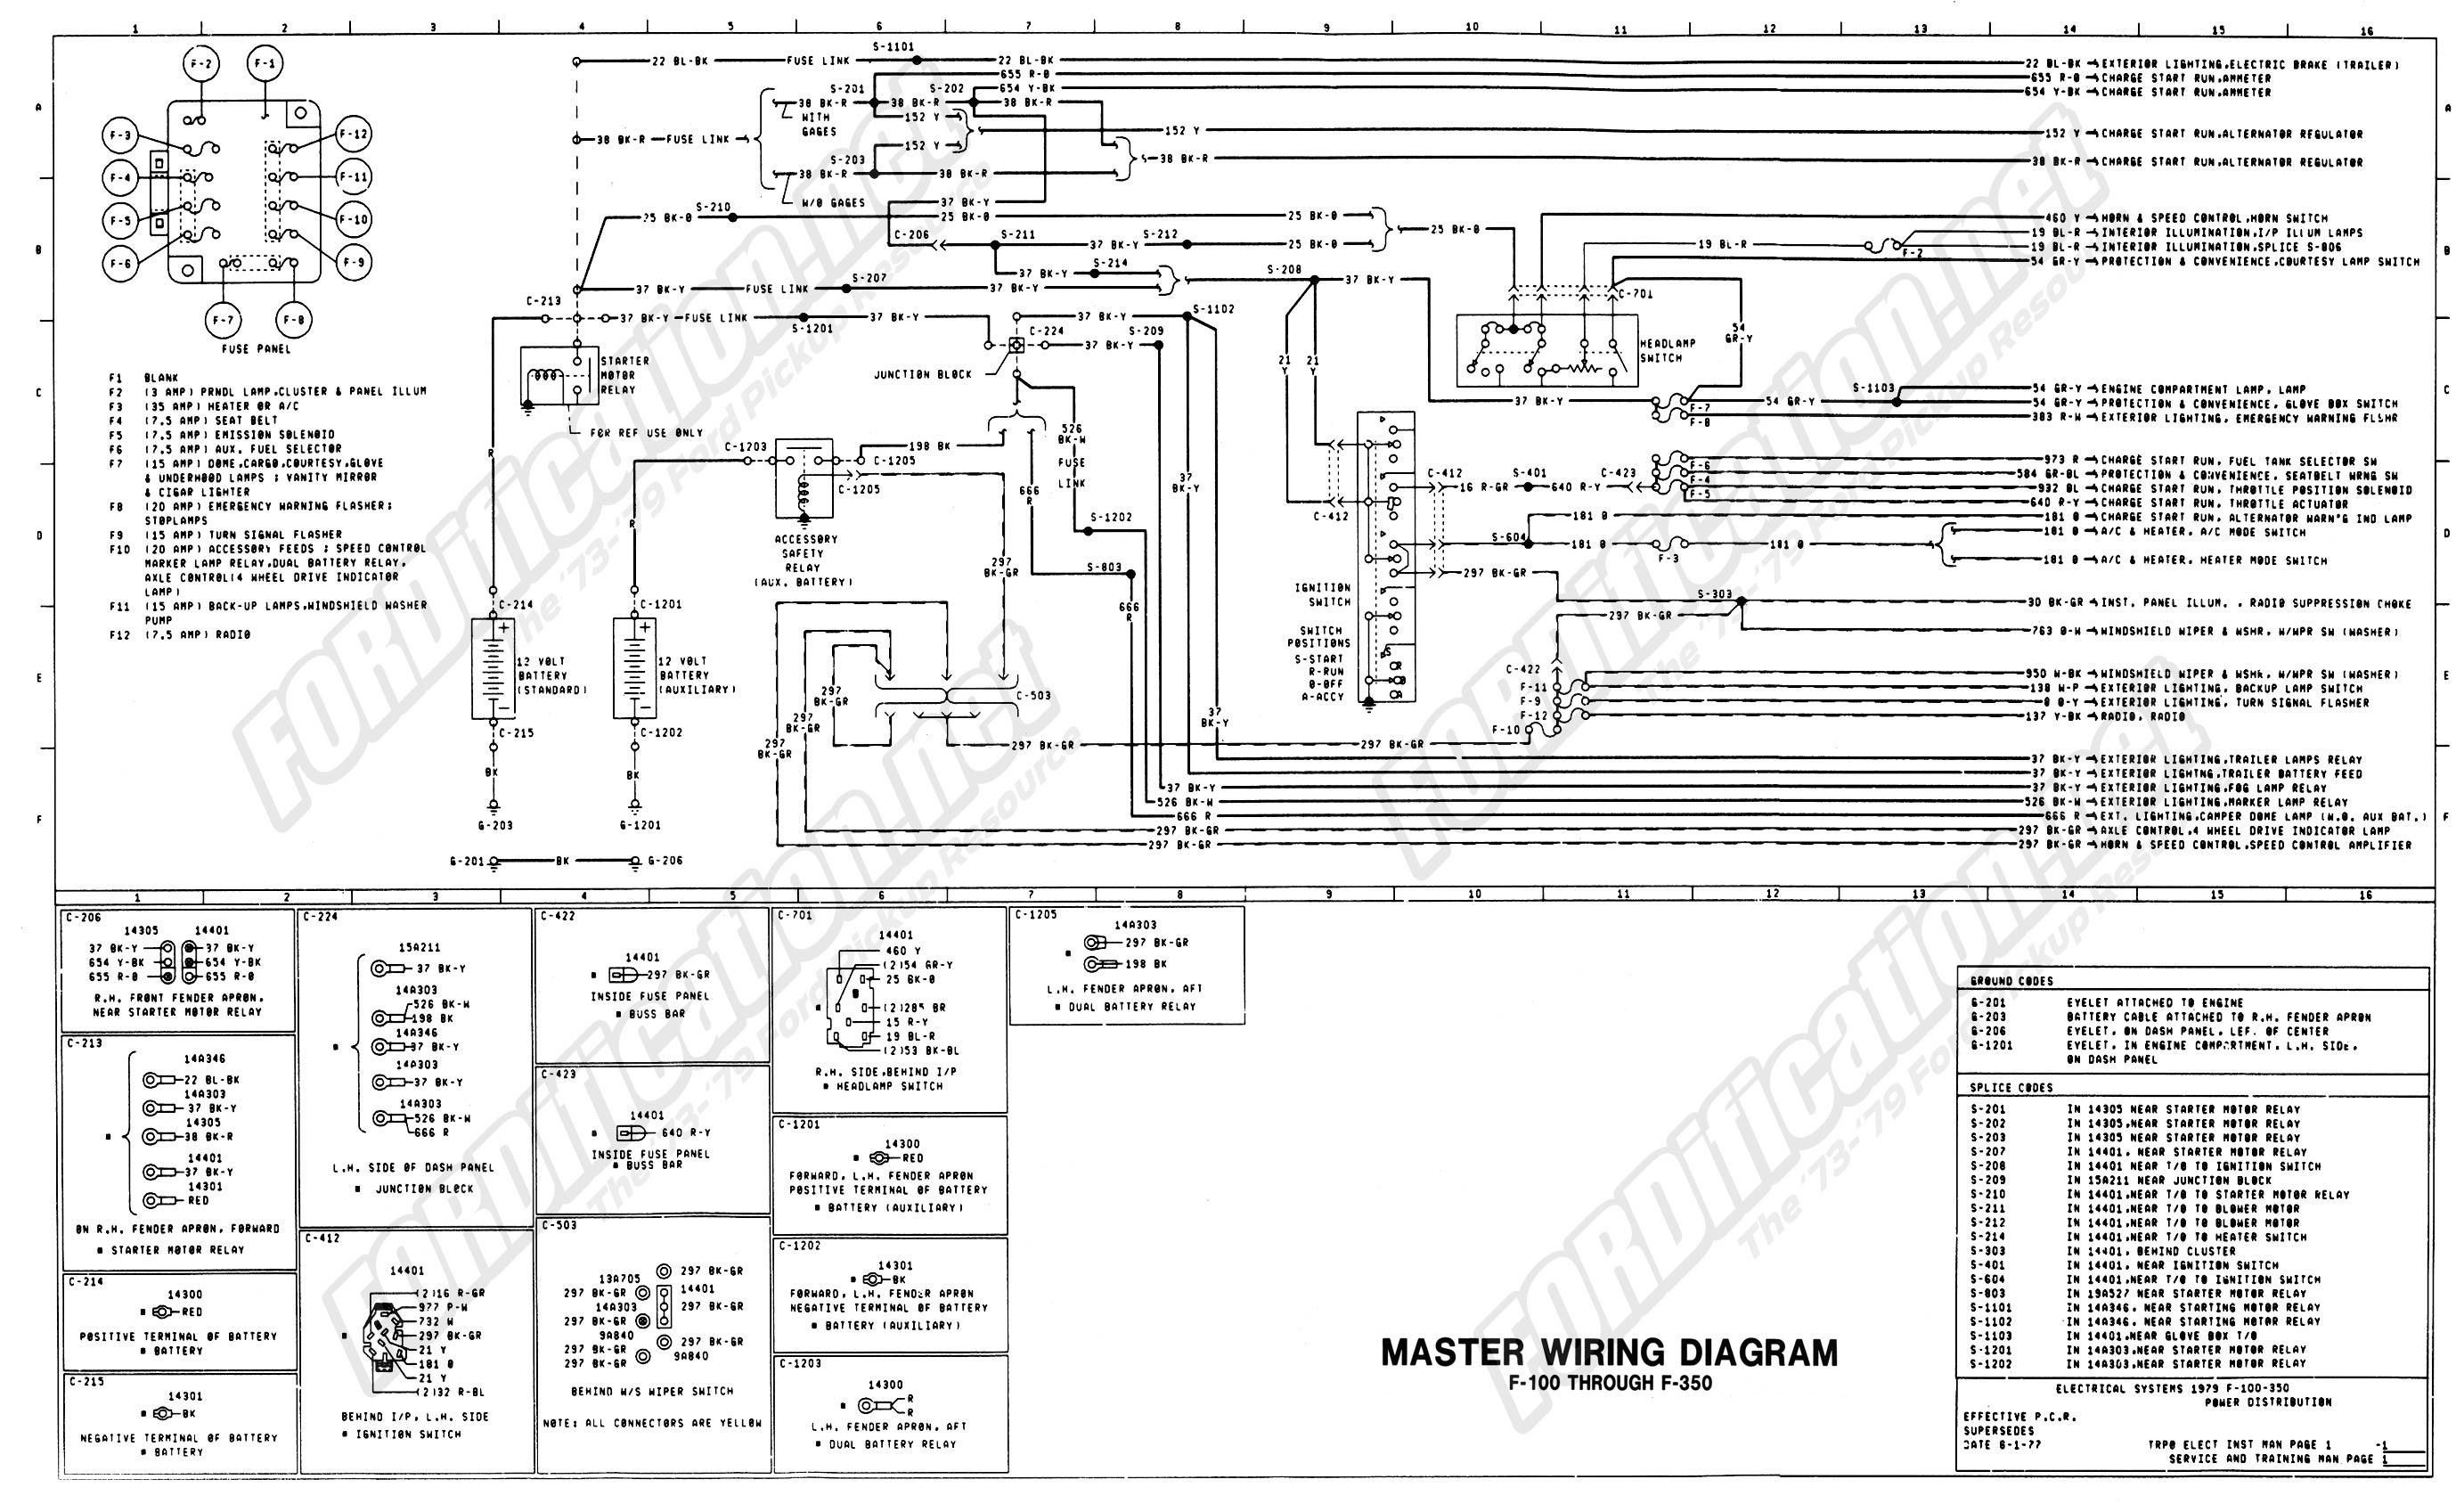 Remarkable 1988 Ford F150 Radio Wiring Diagram Pictures